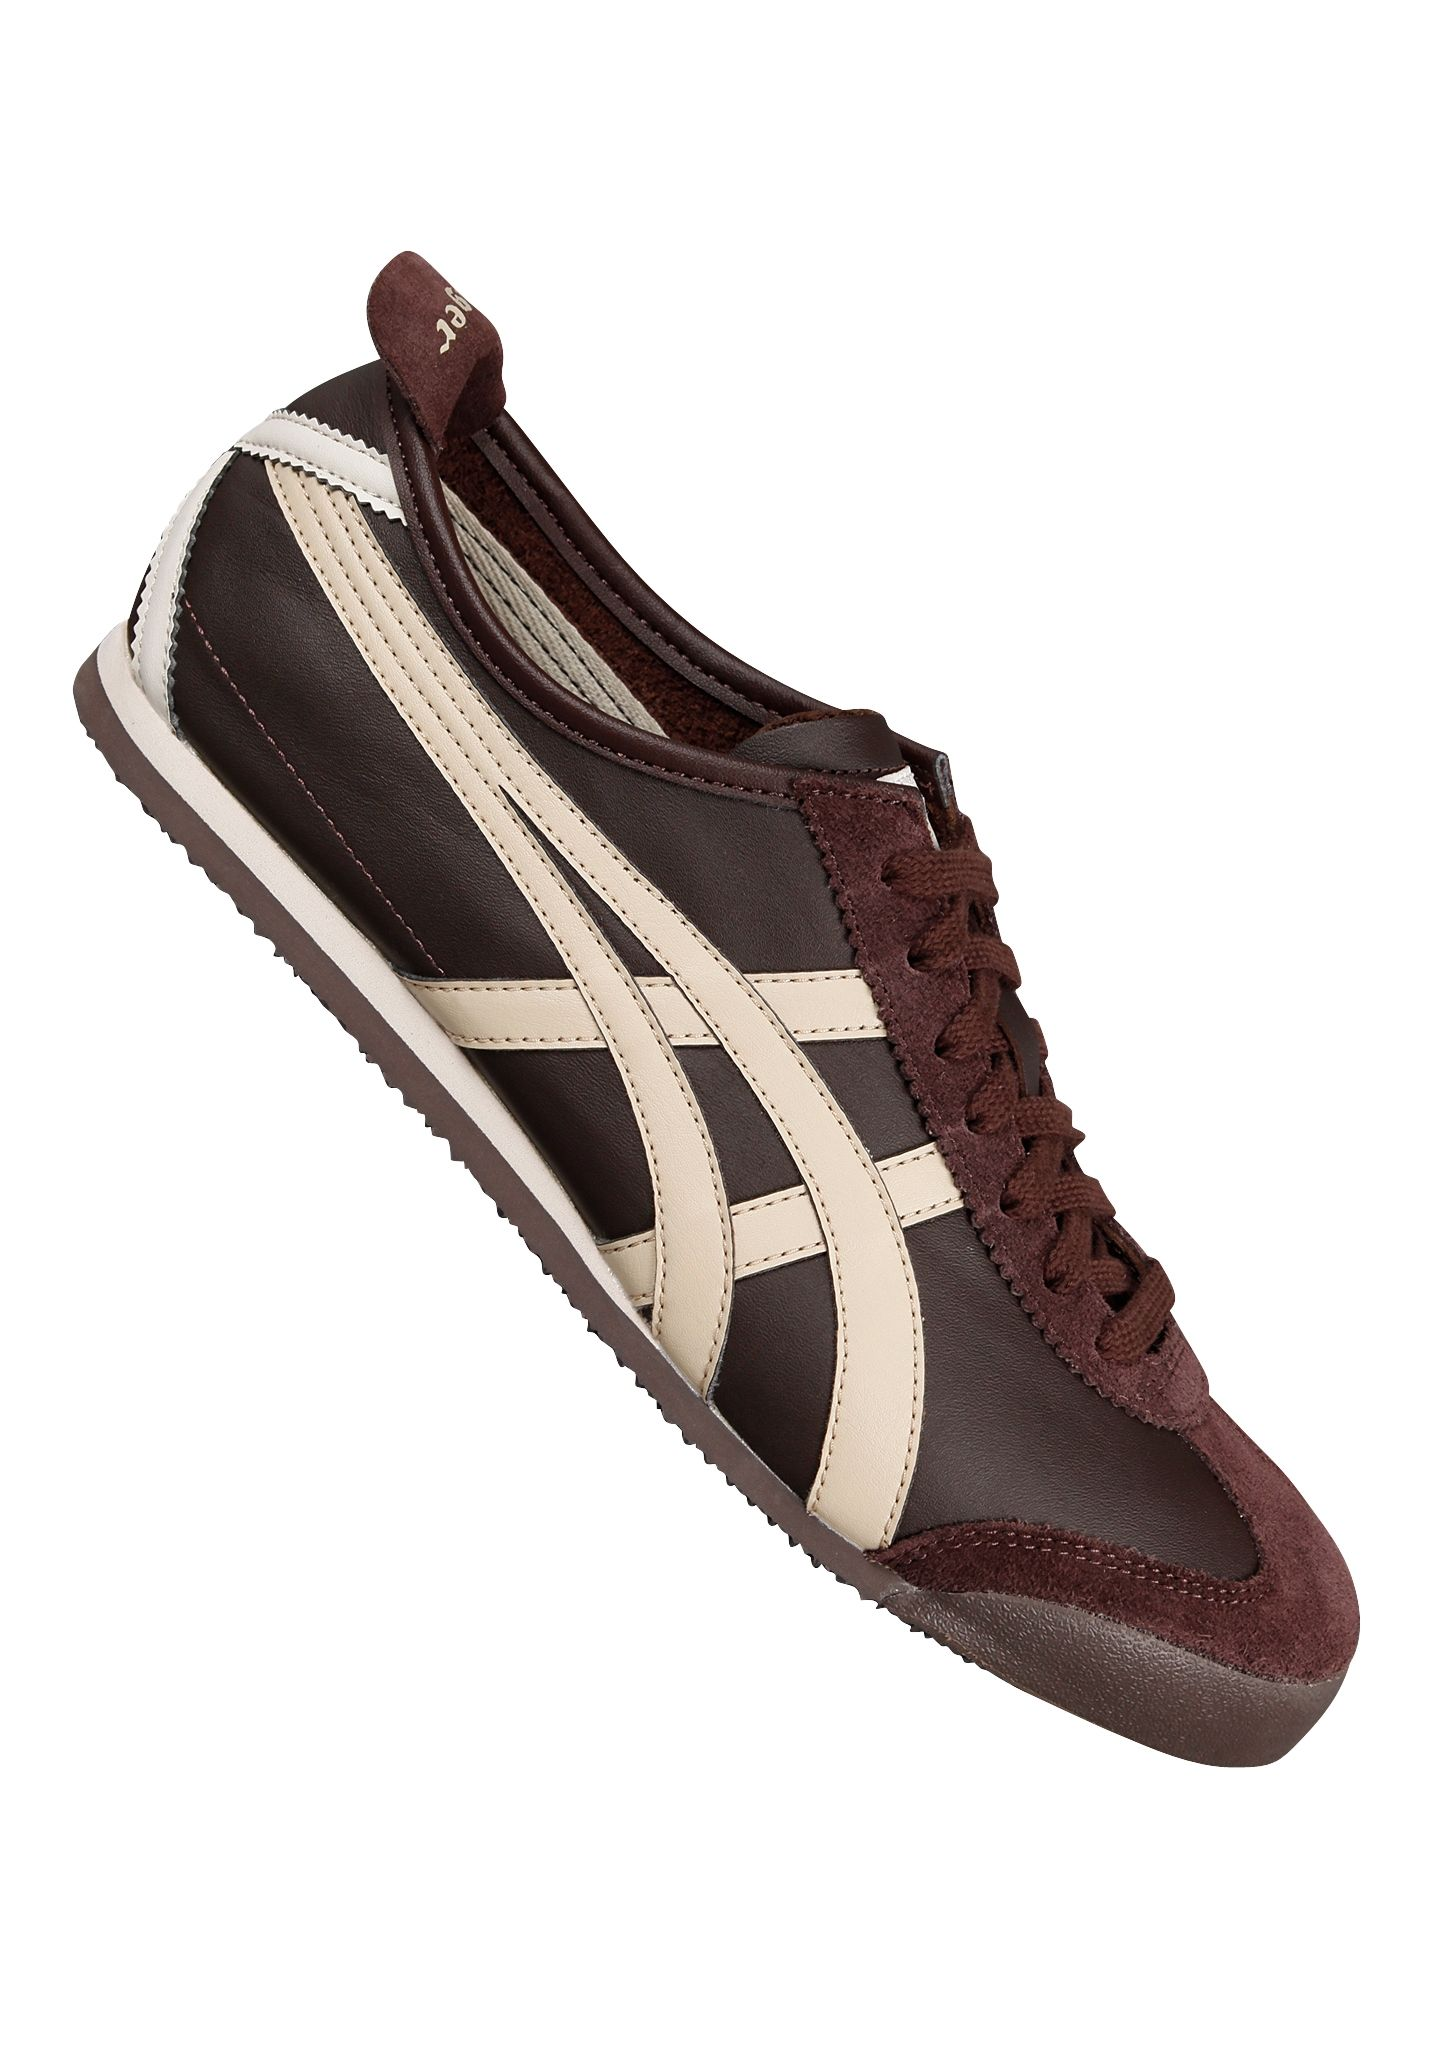 ASICS Onitsuka Tiger Mexico 66 Sneakers for Men Brown Planet Sports